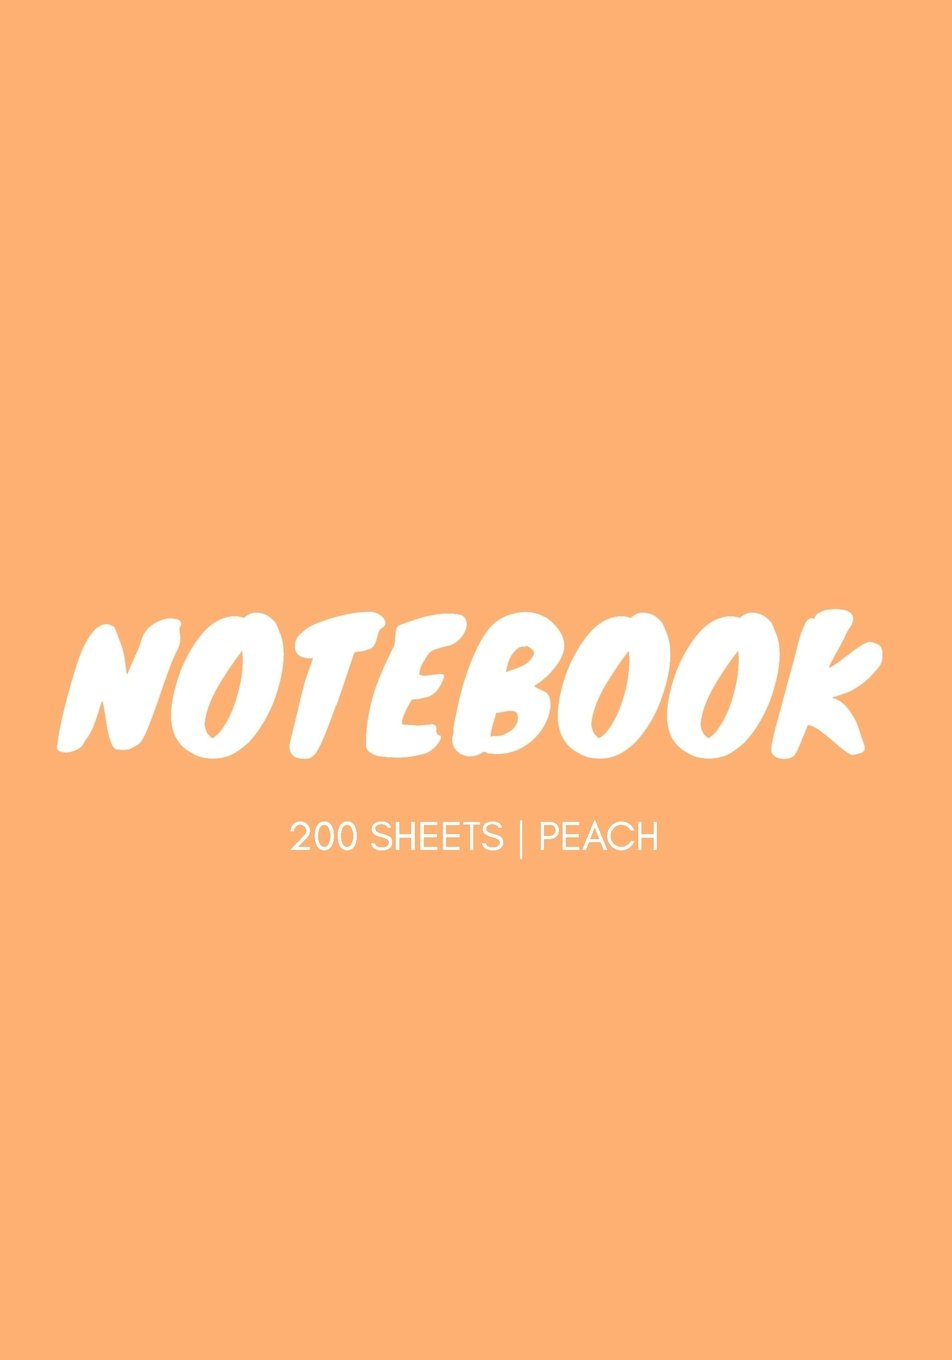 Notebook 200 Sheets: Peach: Notebook 7 x 10: Notebook 400 Pages ebook